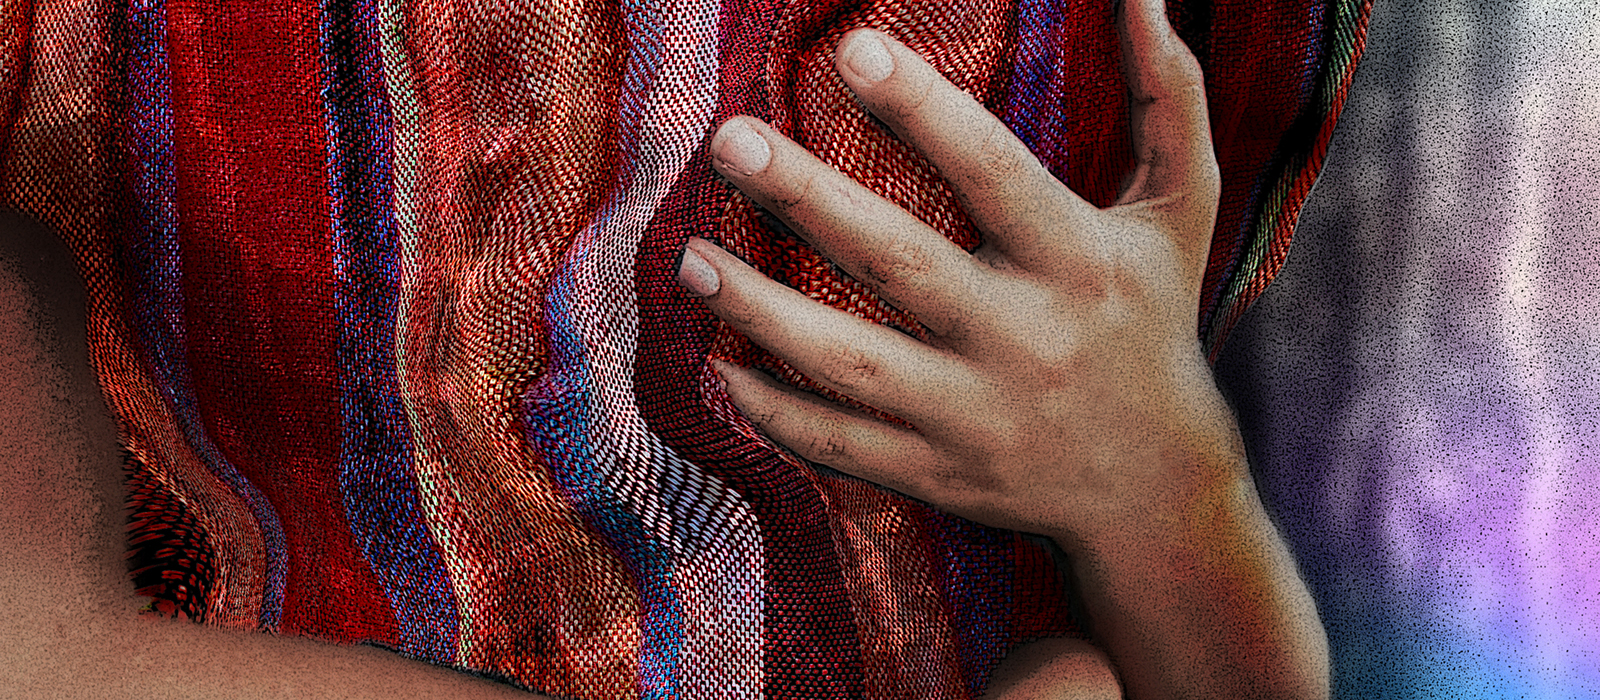 Two brown arms of a child are visible wrapped around an adult torso. The adult is wearing a homespun-looking, madras-style plaid in warm golds, reds, oranges, with blue accents. The image has been heavily composited and processed to look more illustrated than photographed.